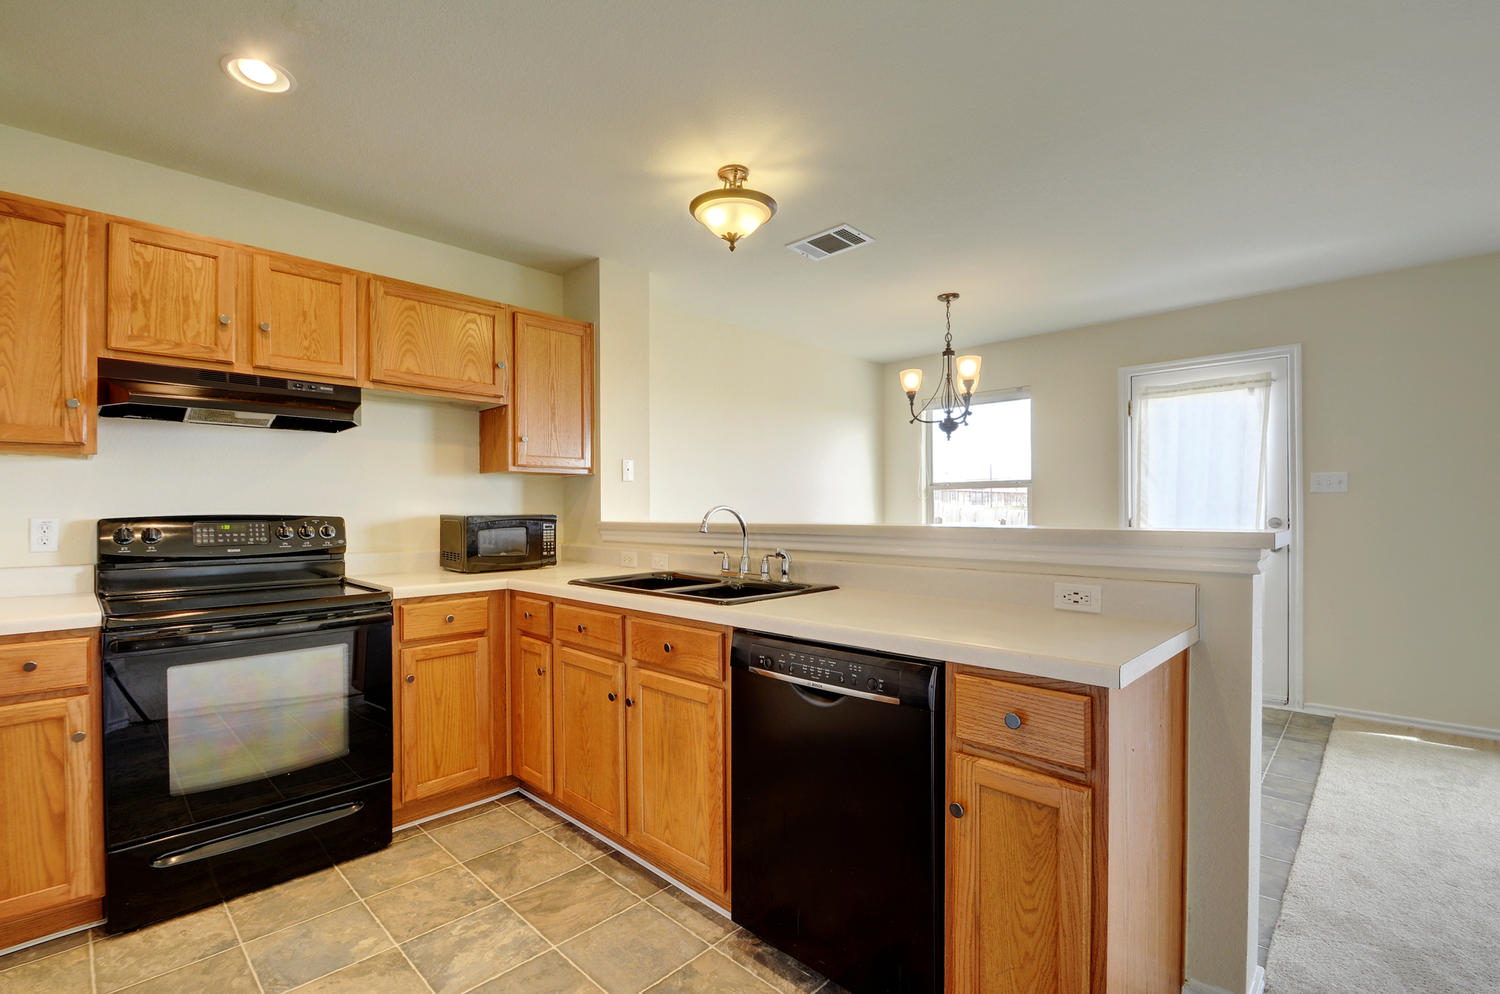 18409 Maxa Dr-large-013-9-Kitchen and Breakfast 013-1500x994-72dpi.jpg